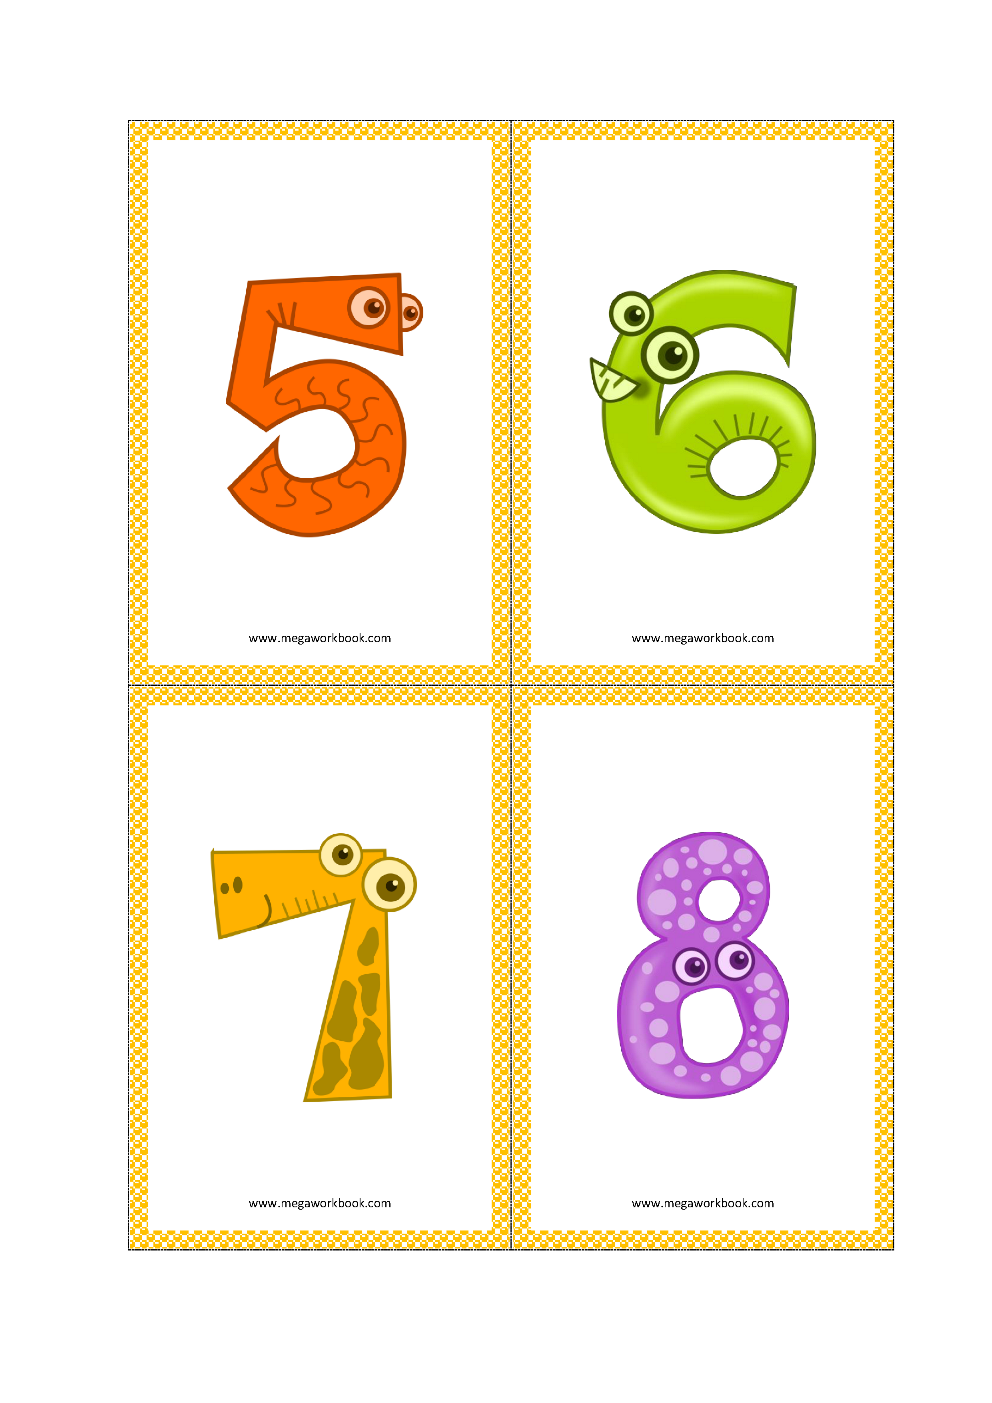 photo about Printable Numbers Flashcards identify Quantity Flashcards - Variety Flashcards Printable Cost-free - (1 in the direction of